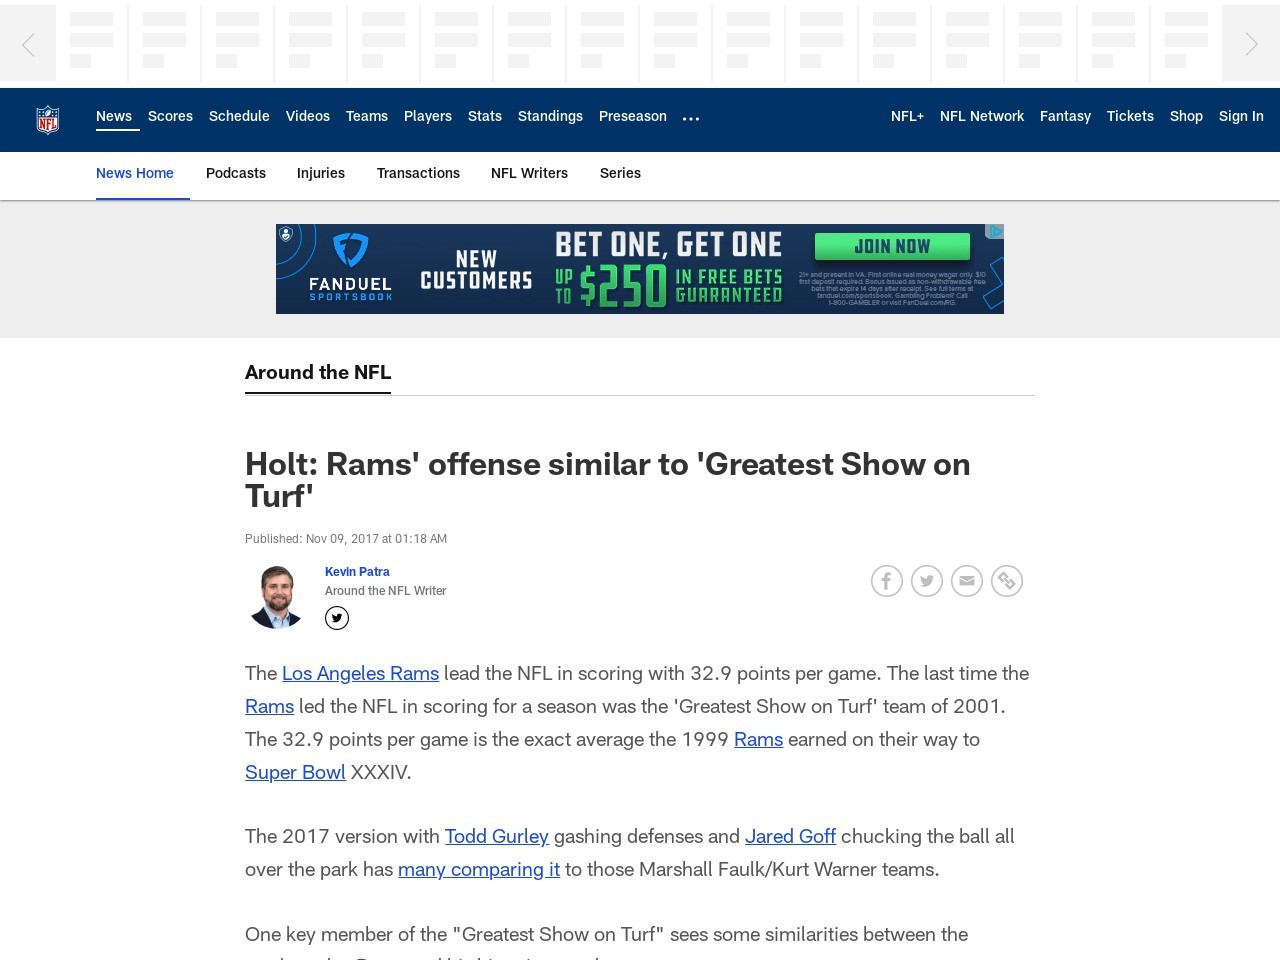 Holt: Rams' offense similar to 'Greatest Show on Turf'